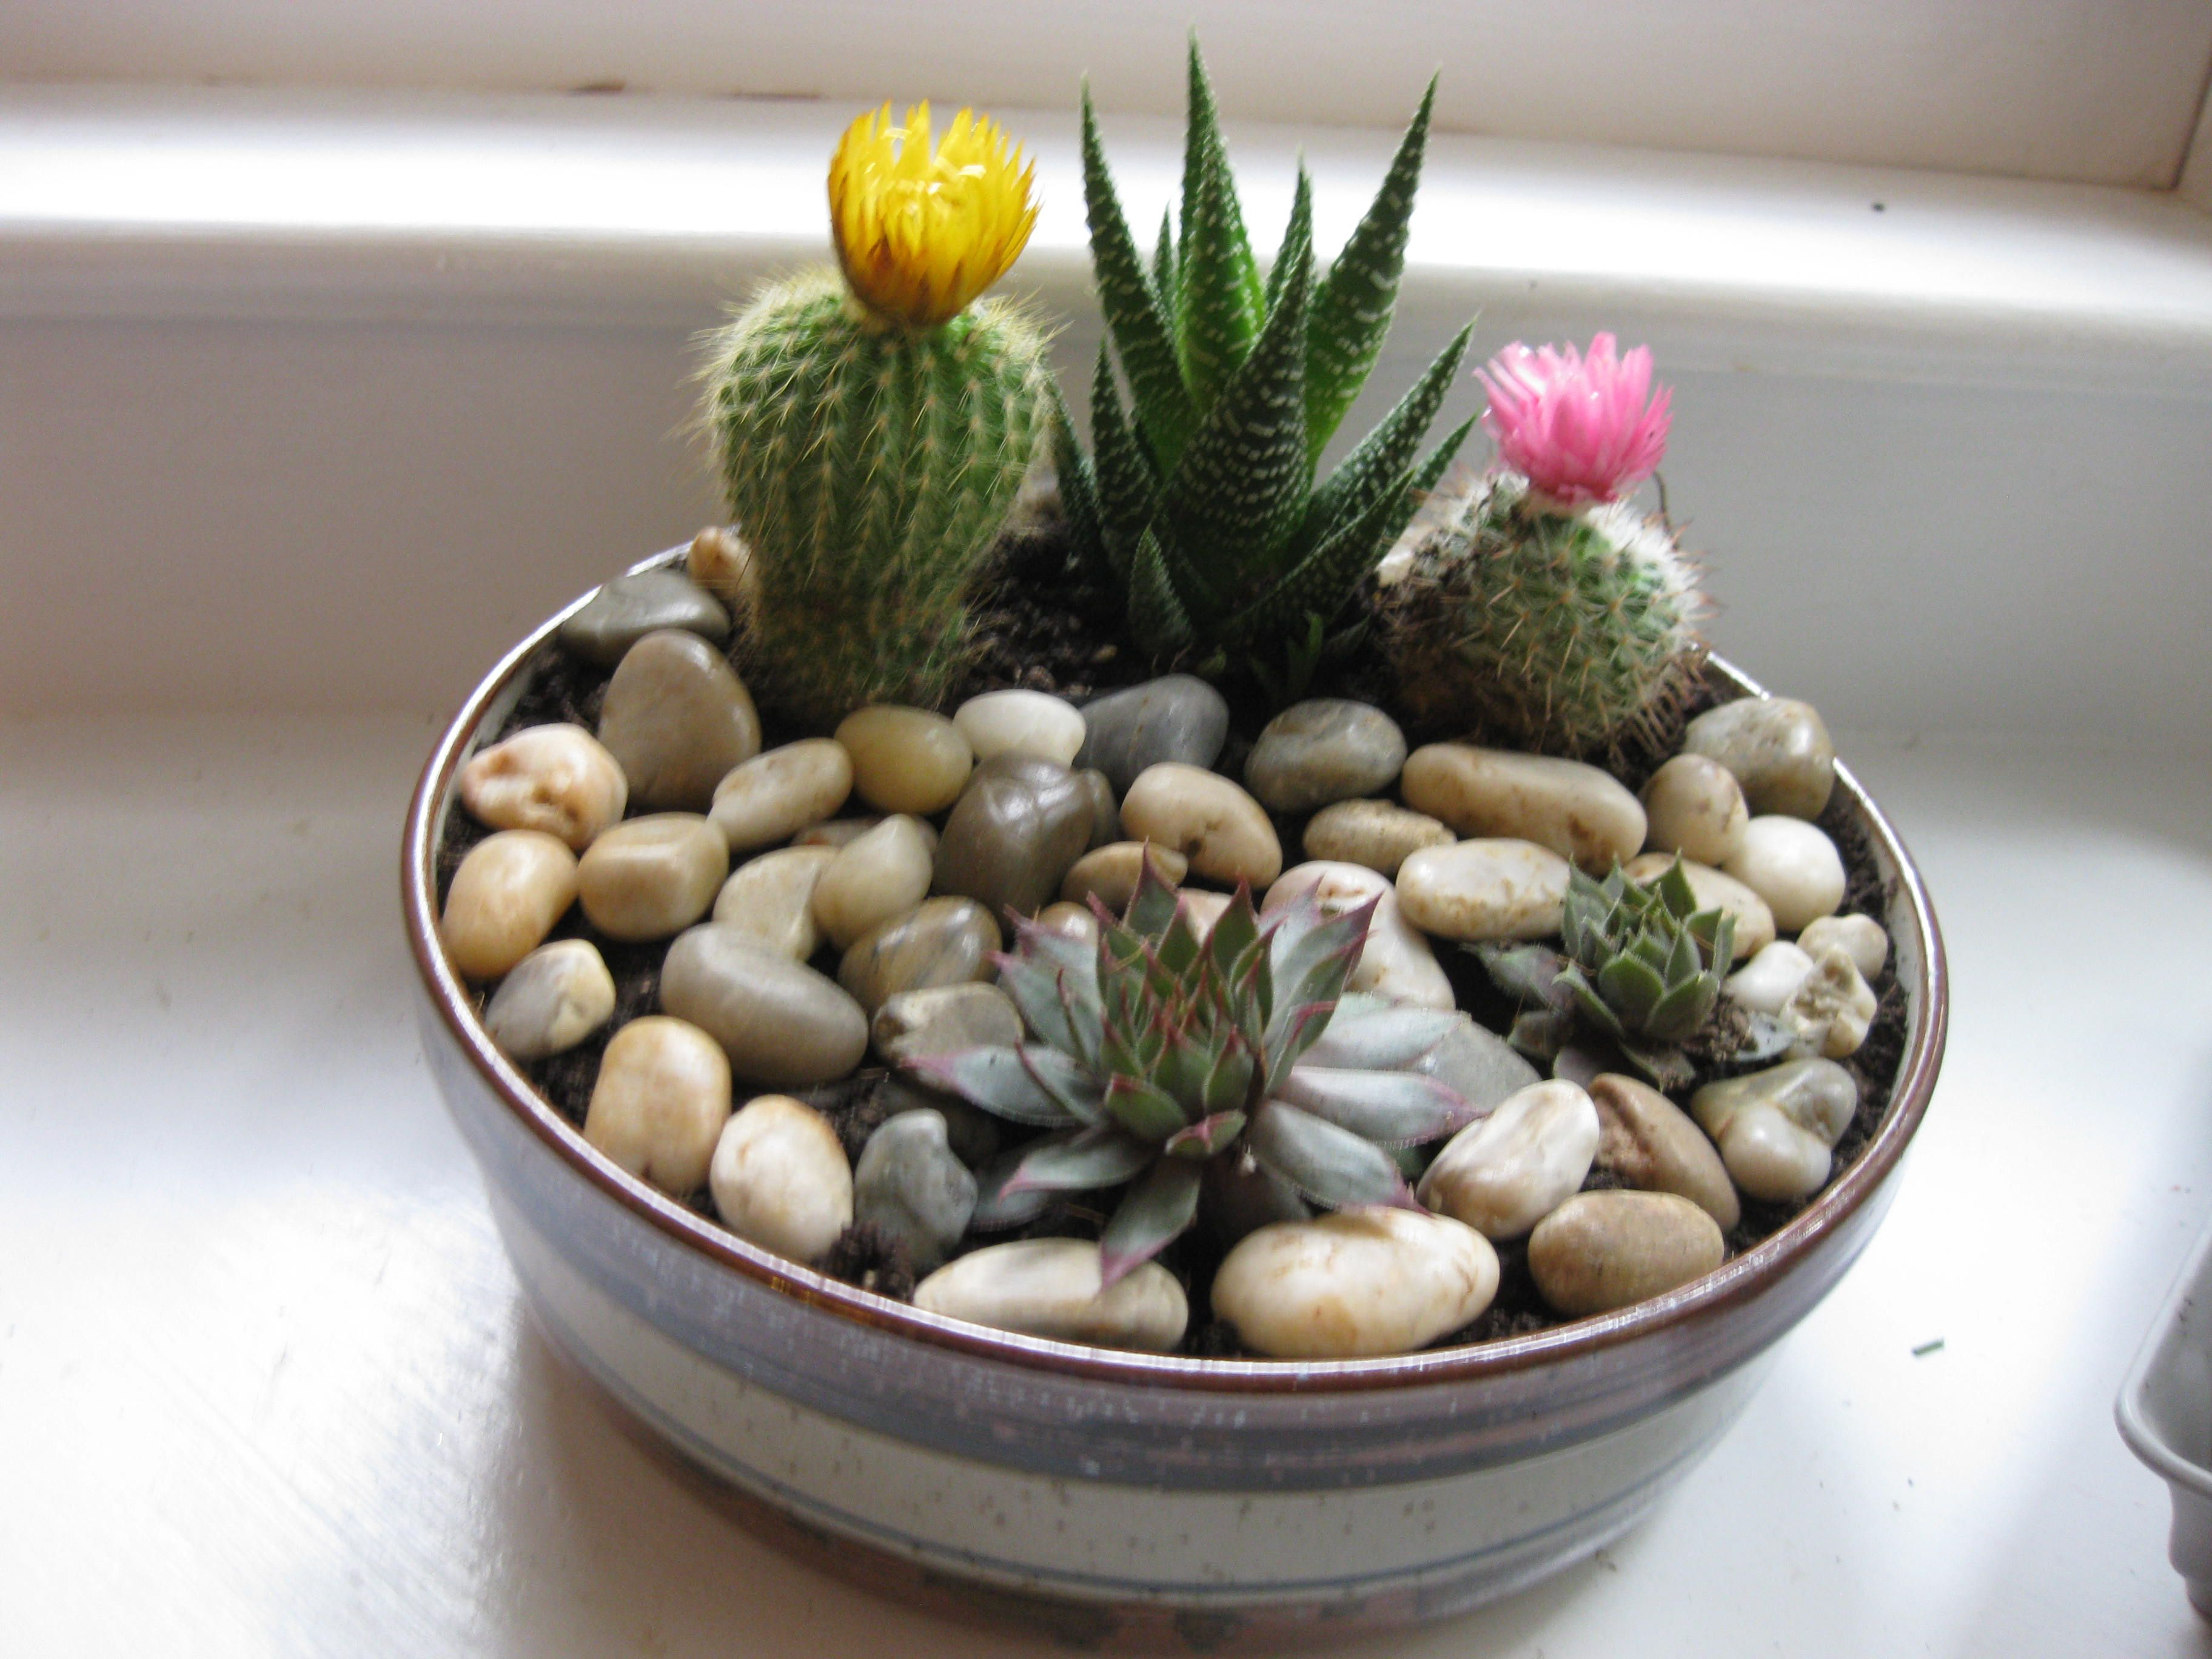 DIY rock garden. Made from thrift shop noodle bowl and ... Ze Plant At Home Depot on plants with white flowers, plants at ikea, plants at kroger, plants at tj maxx, plants under evergreen trees, plants at kmart, plants at harris teeter, plants at publix, plants at sam's club, plants that repel bugs and pests, plants at homegoods, plants that repel mosquitoes, plants inside home, plants at safeway, plants at disney, plants at michaels, plants at office depot, vines depot, plants at cvs, plants at menards,